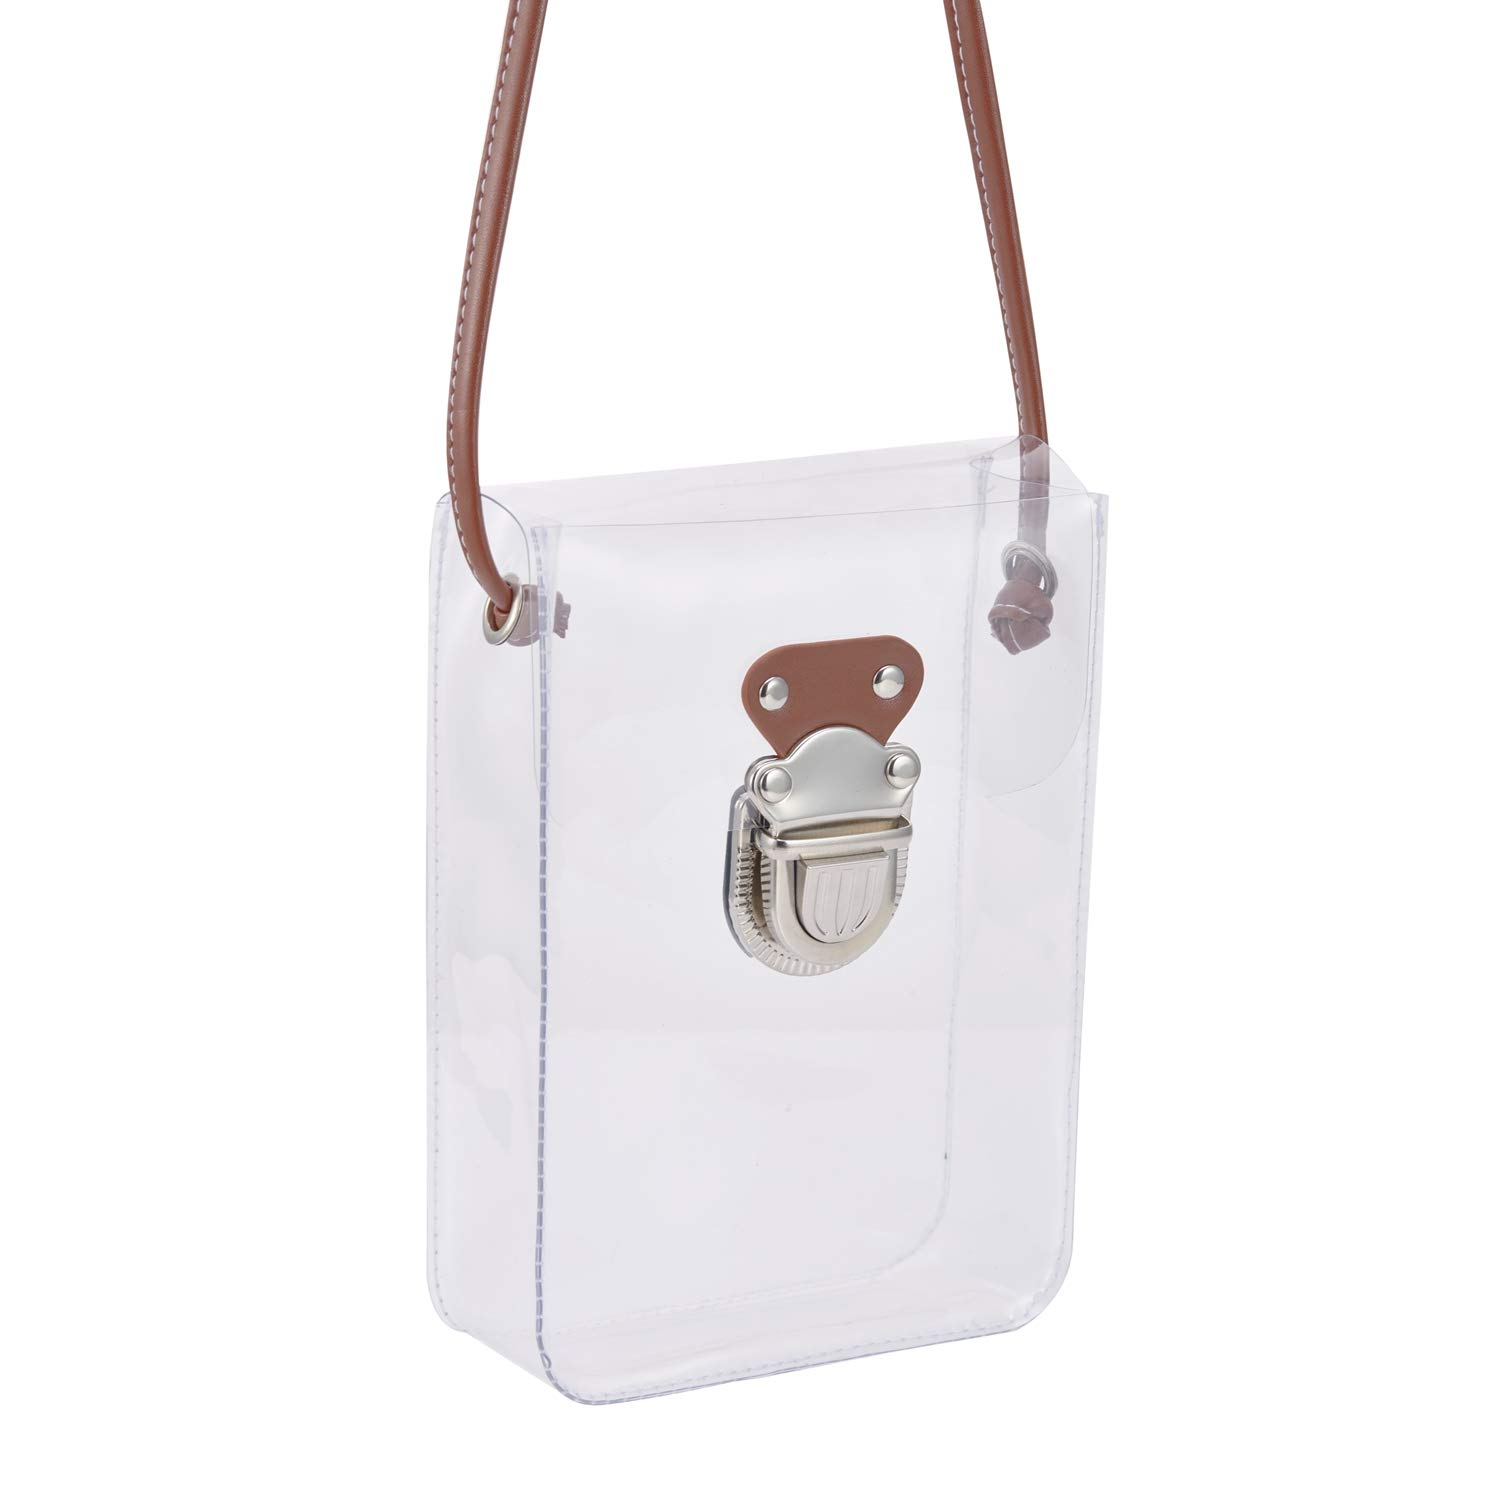 NFL Stadium Approved Transparent Messenger Bag with DIY Shoulder Strap GreenPine Mini Clear Purse Shoulder Bag for Women